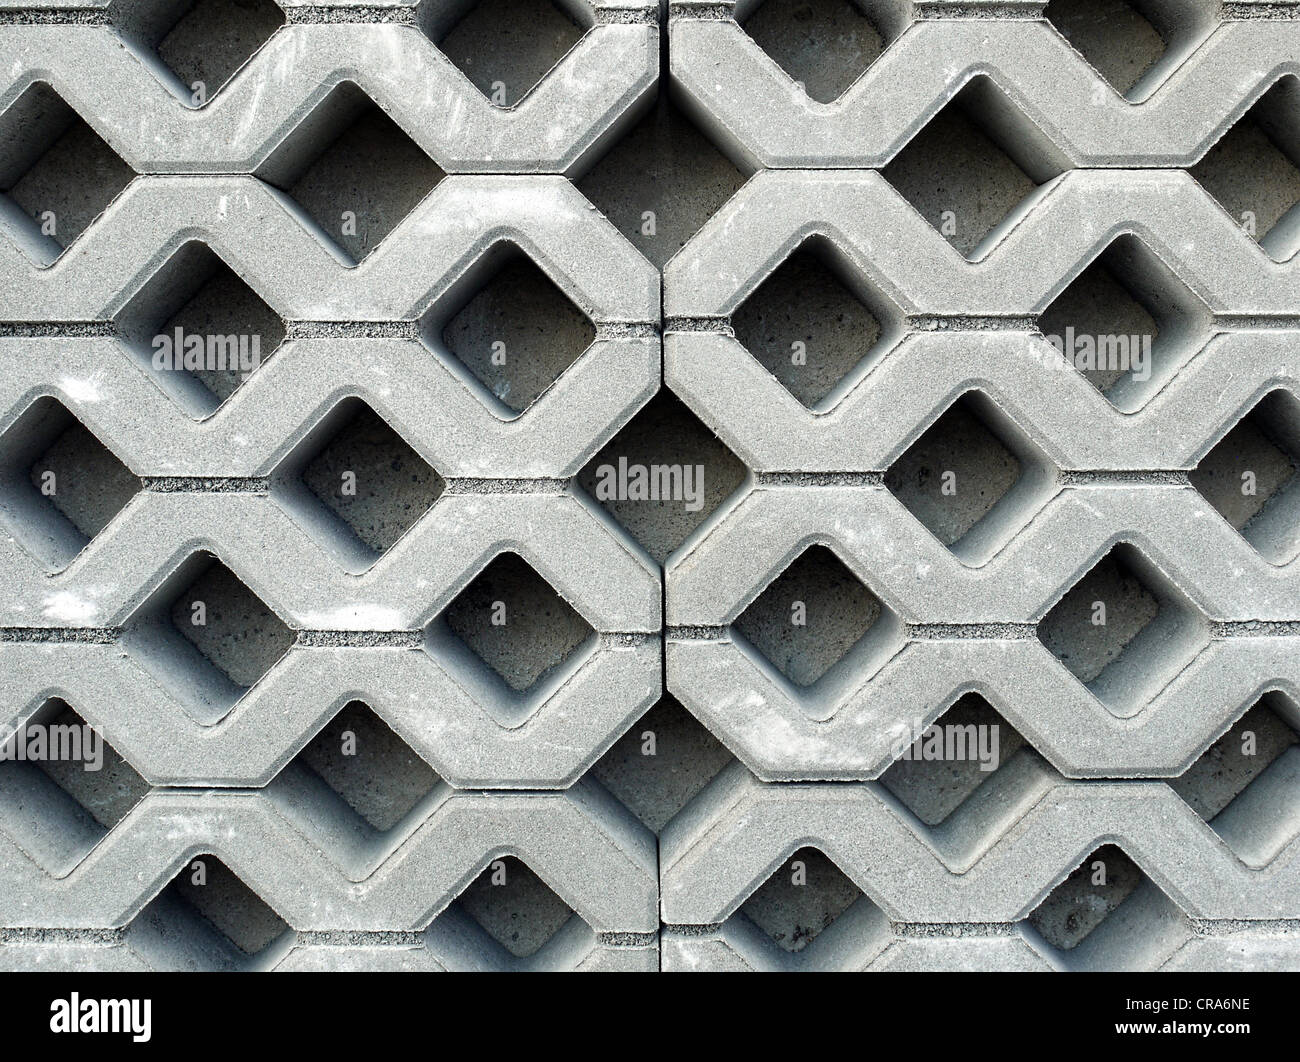 Openwork concrete pavement shot from above - Stock Image